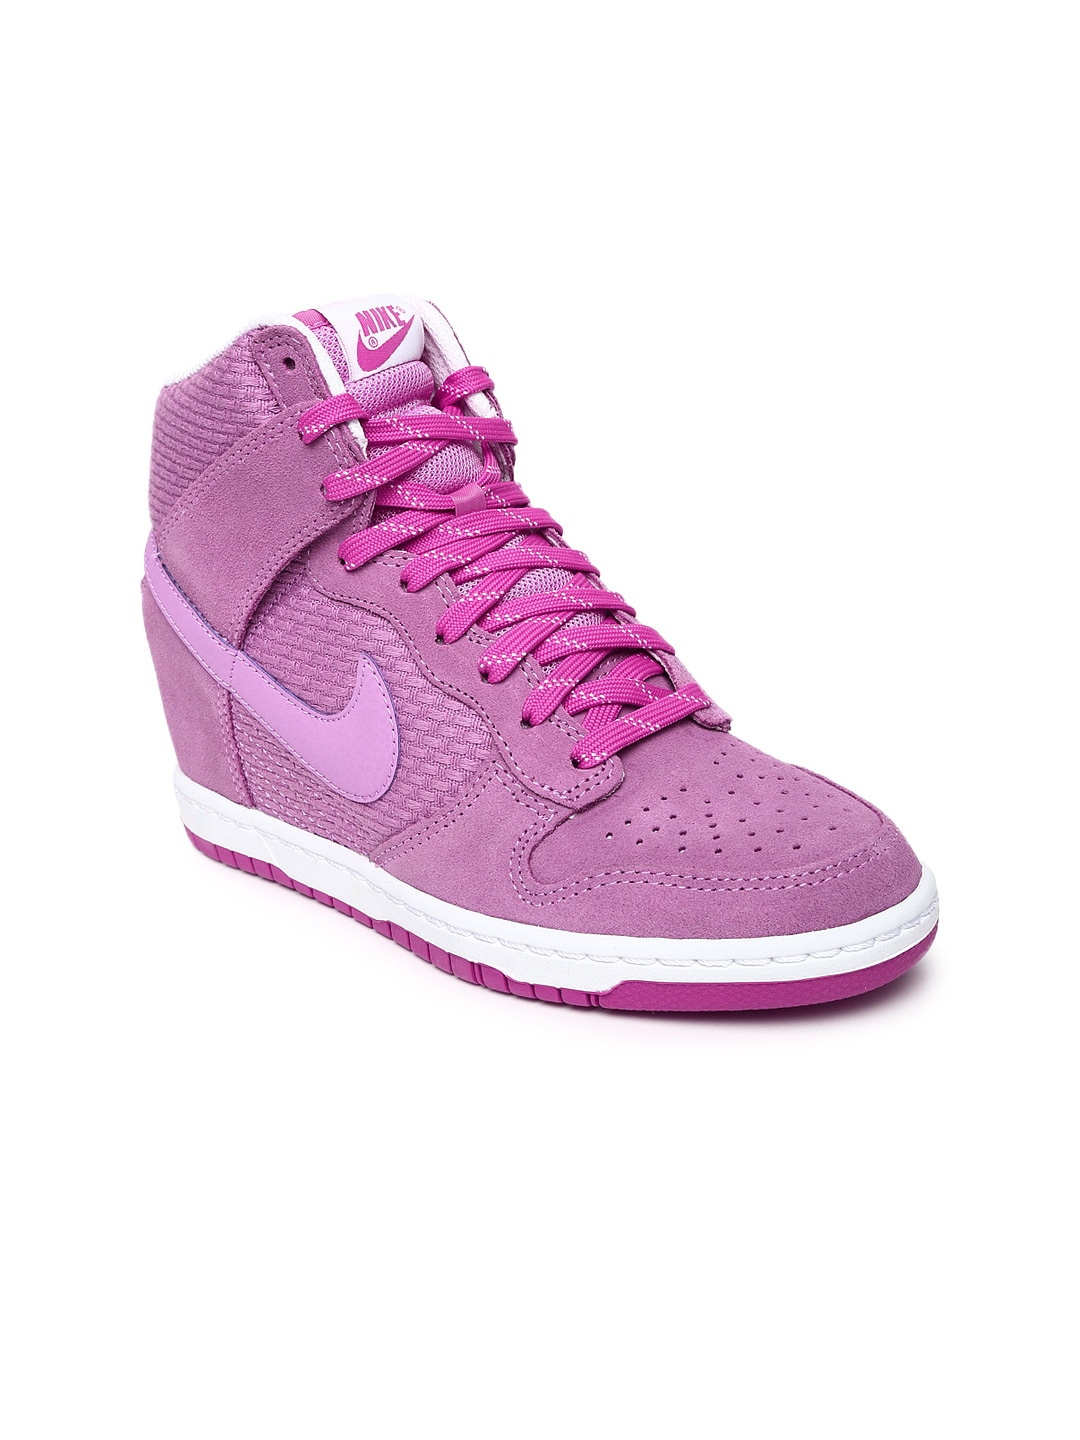 competitive price 4dc50 17ec1 ... buy nike women lavender dunk sky hi essential suede casual shoes casual  shoes ...